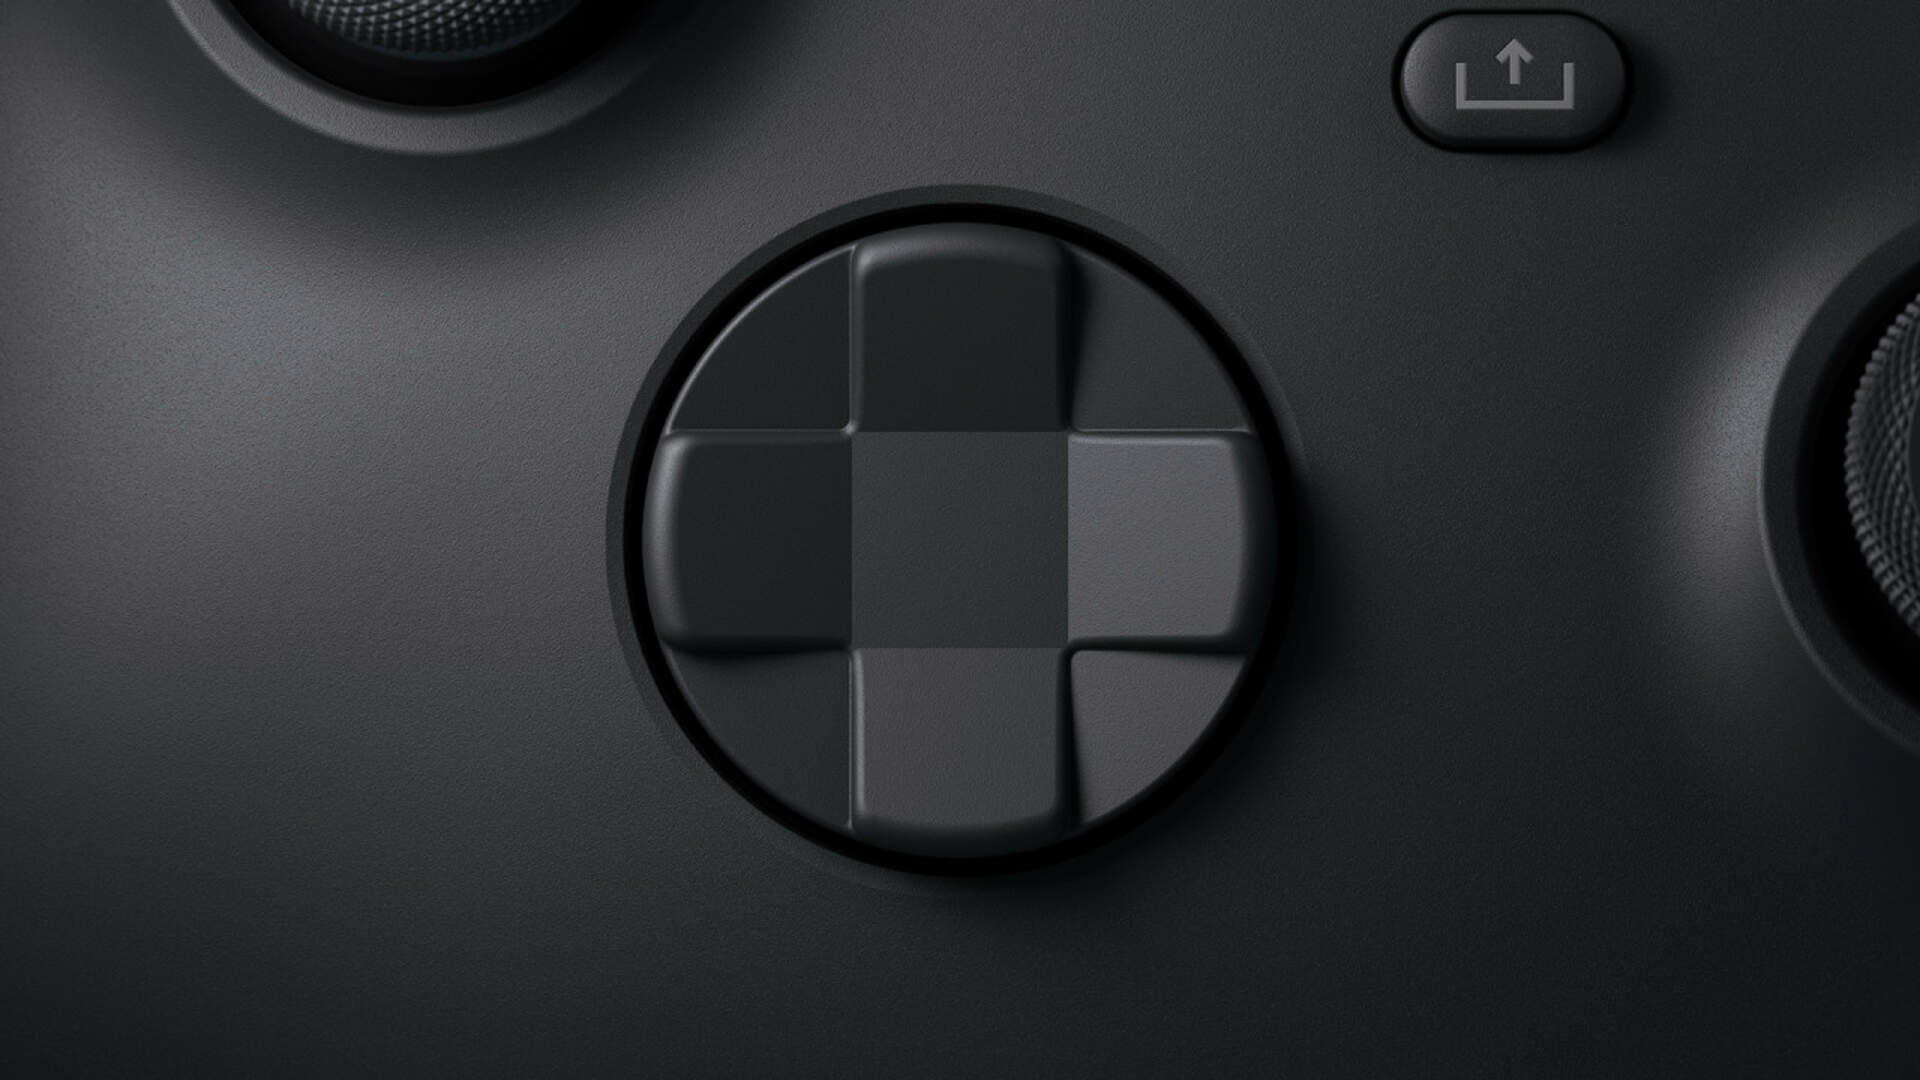 Xbox Series X is Bringing Back the Disc-Shaped D-Pad, but Microsoft Says This Time It'll Work